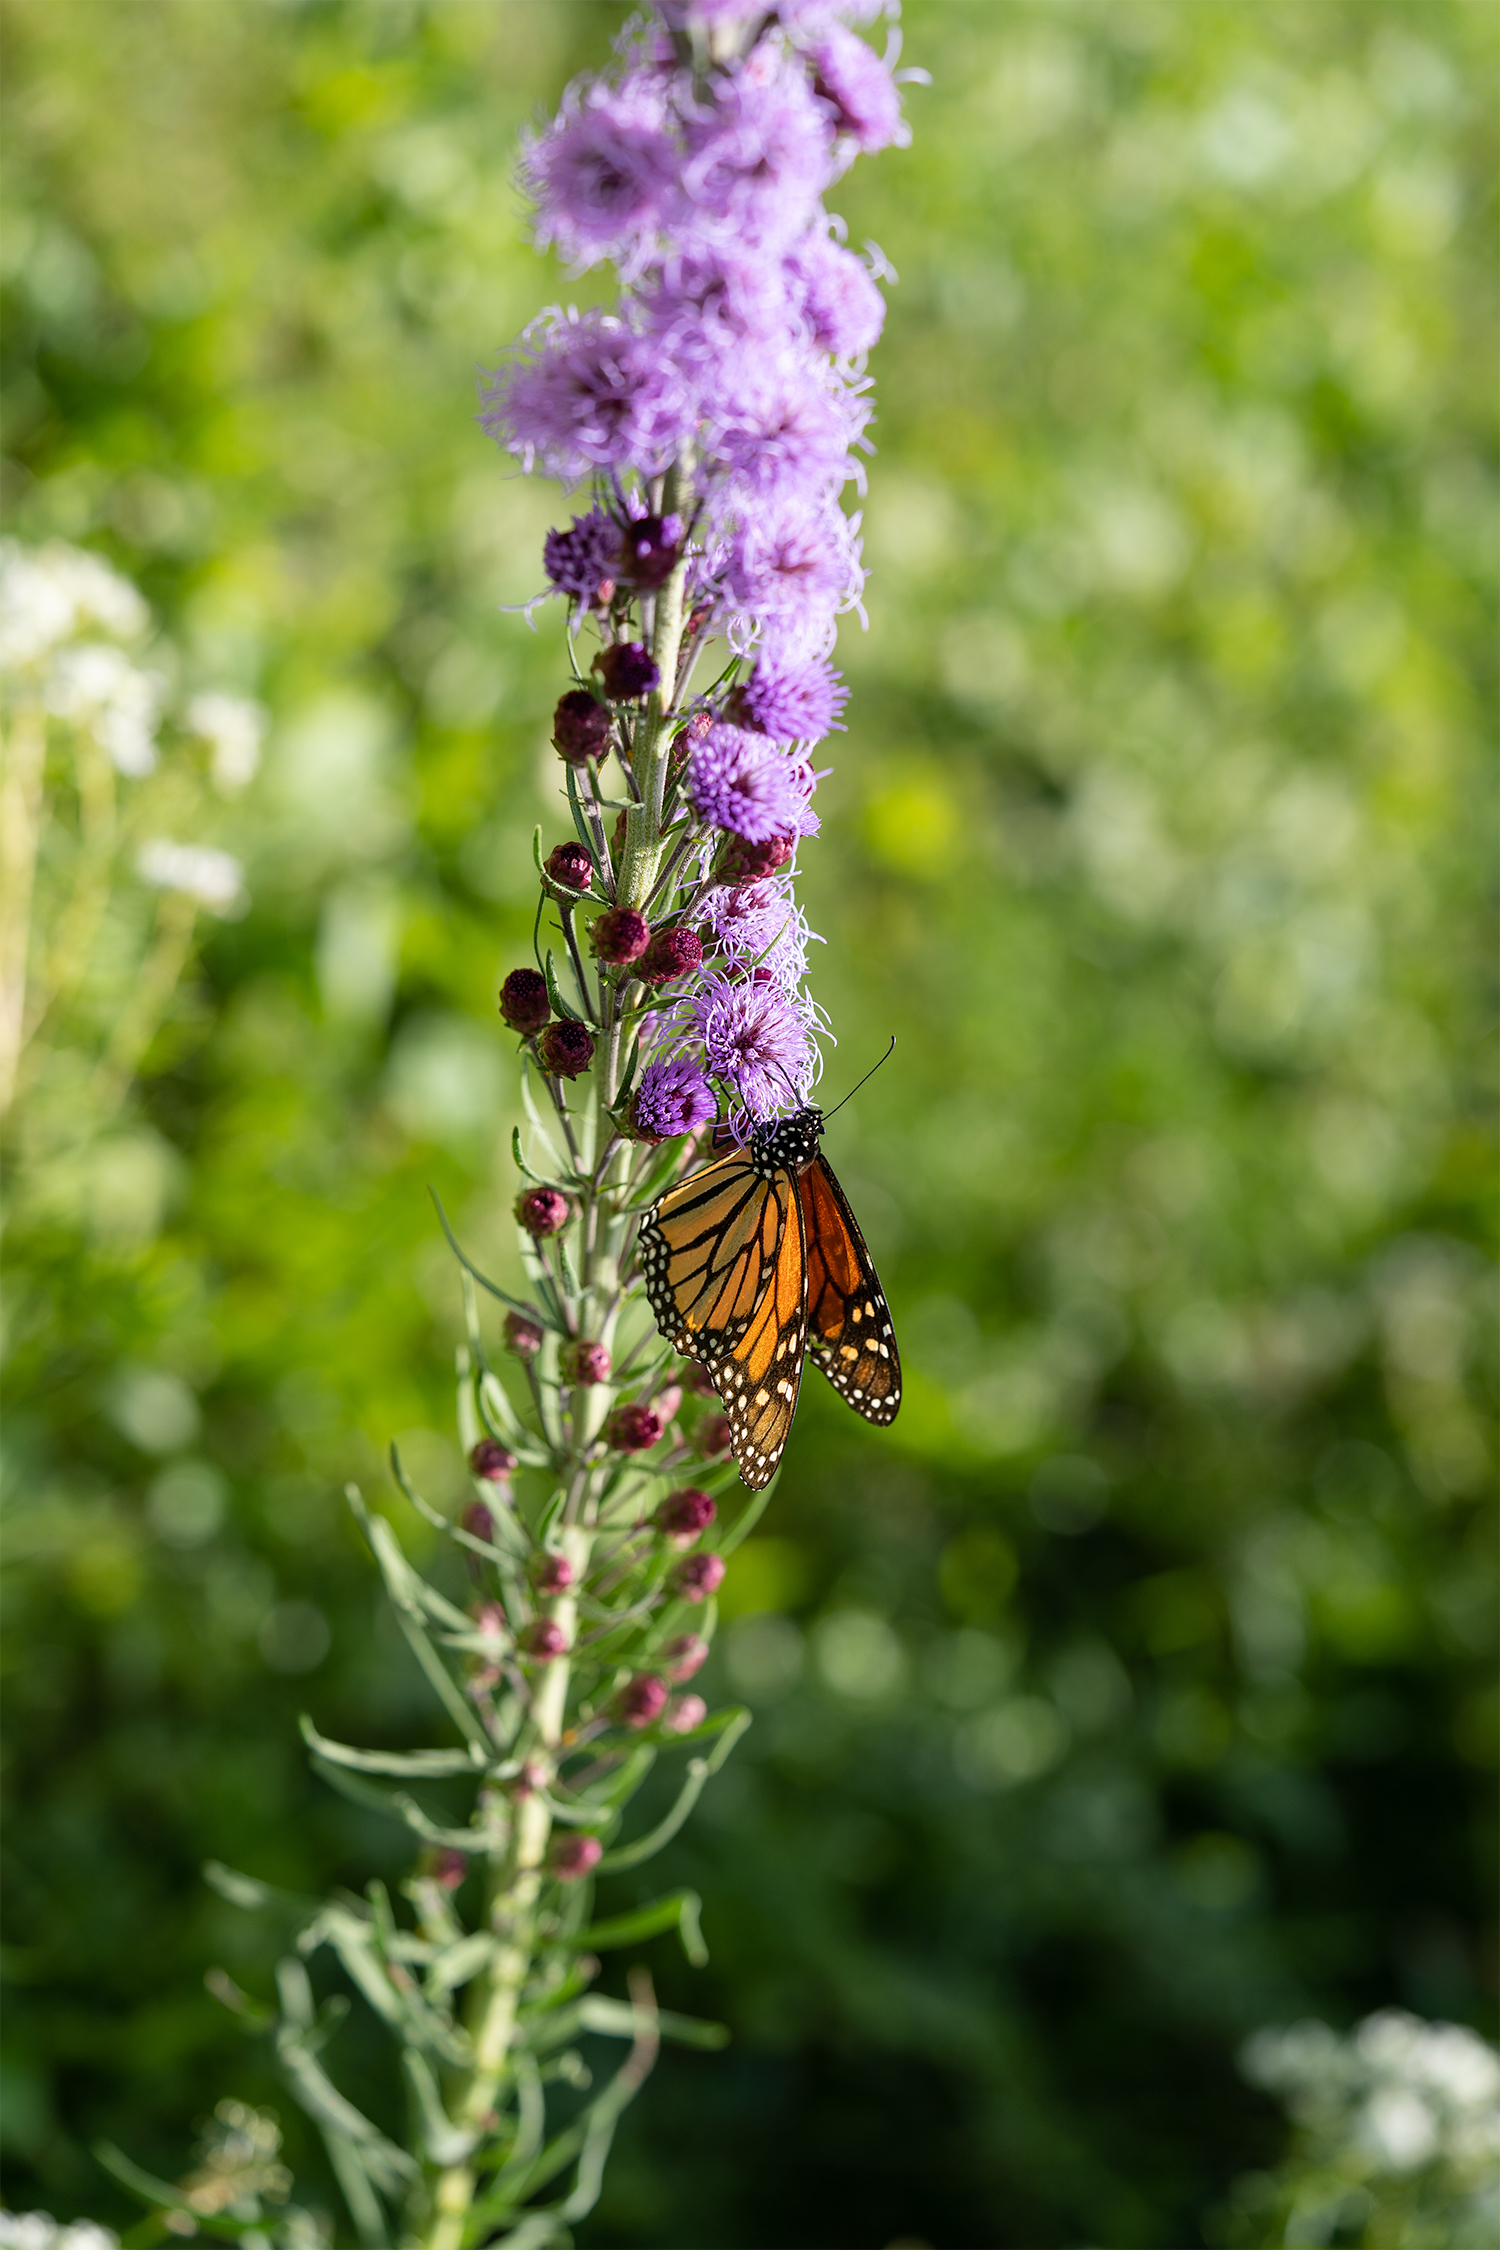 Monarch butterfly on a blooming rough blazing star